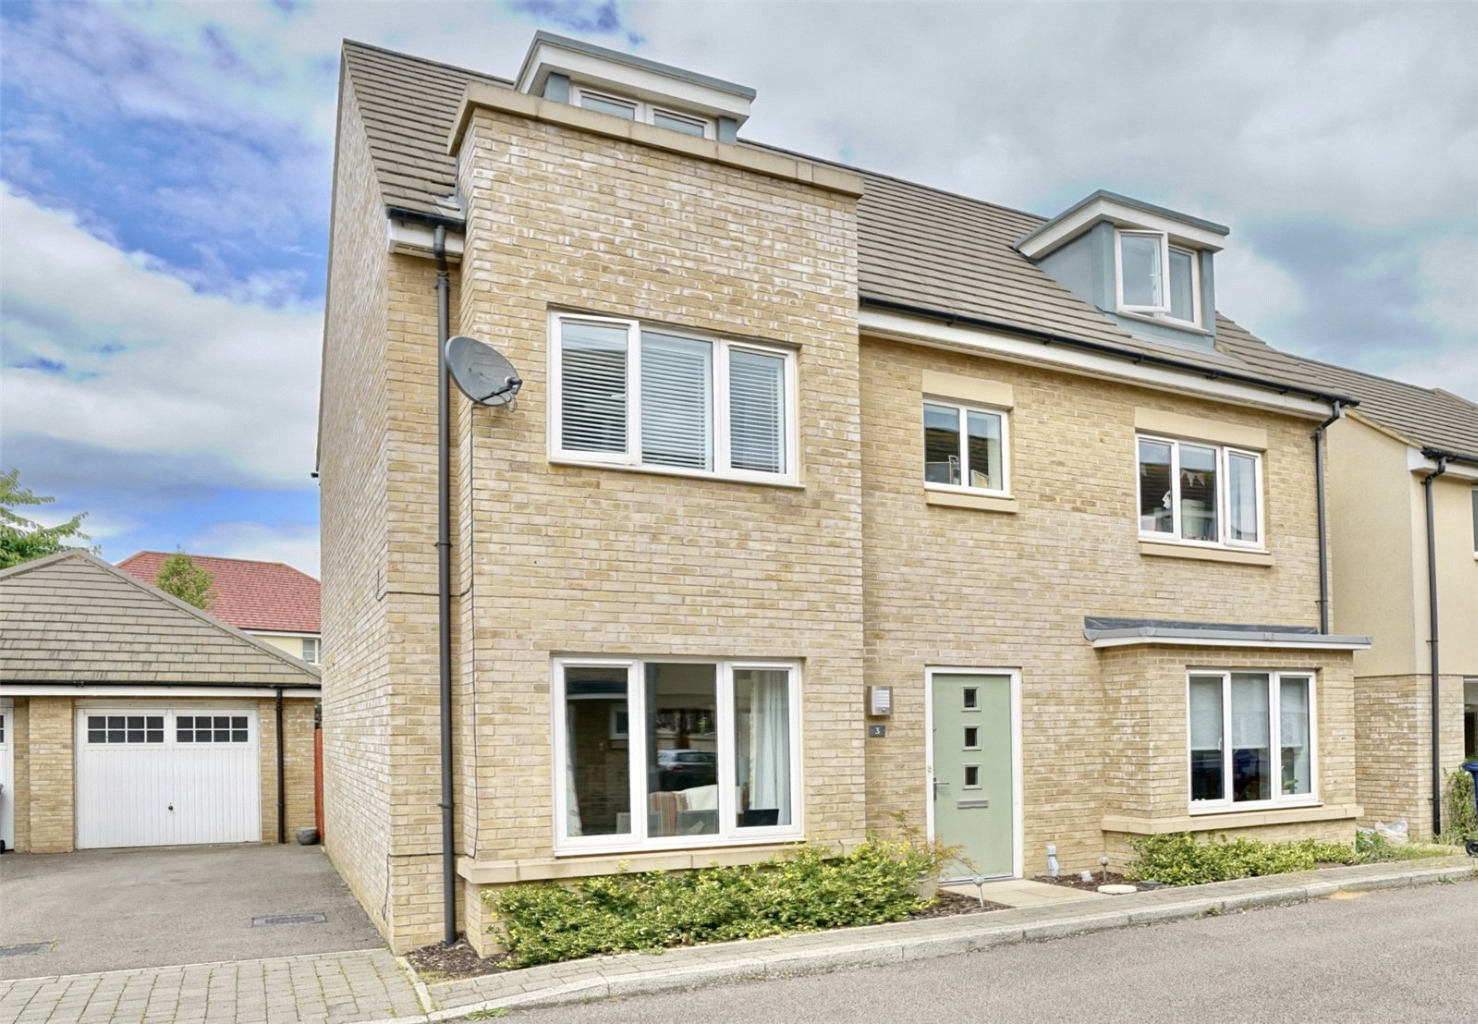 5 bed detached house for sale in Day Close, St. Neots - Property Image 1